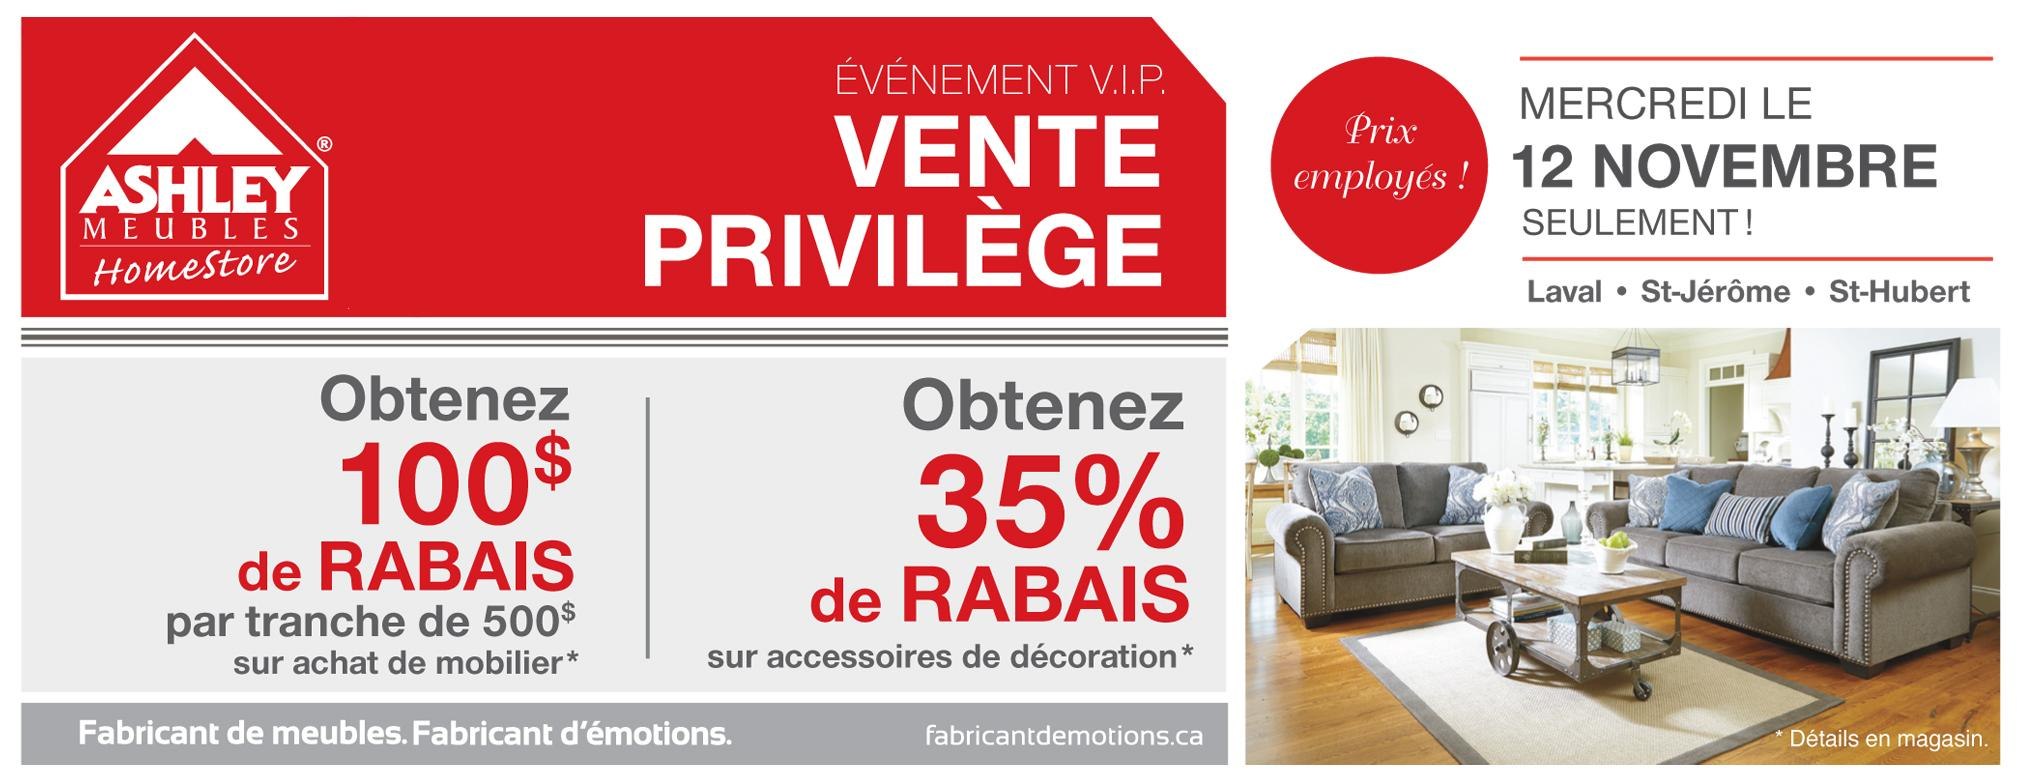 Meubles ashley on twitter aujourd 39 hui seulement promo for Ashley meuble sherbrooke